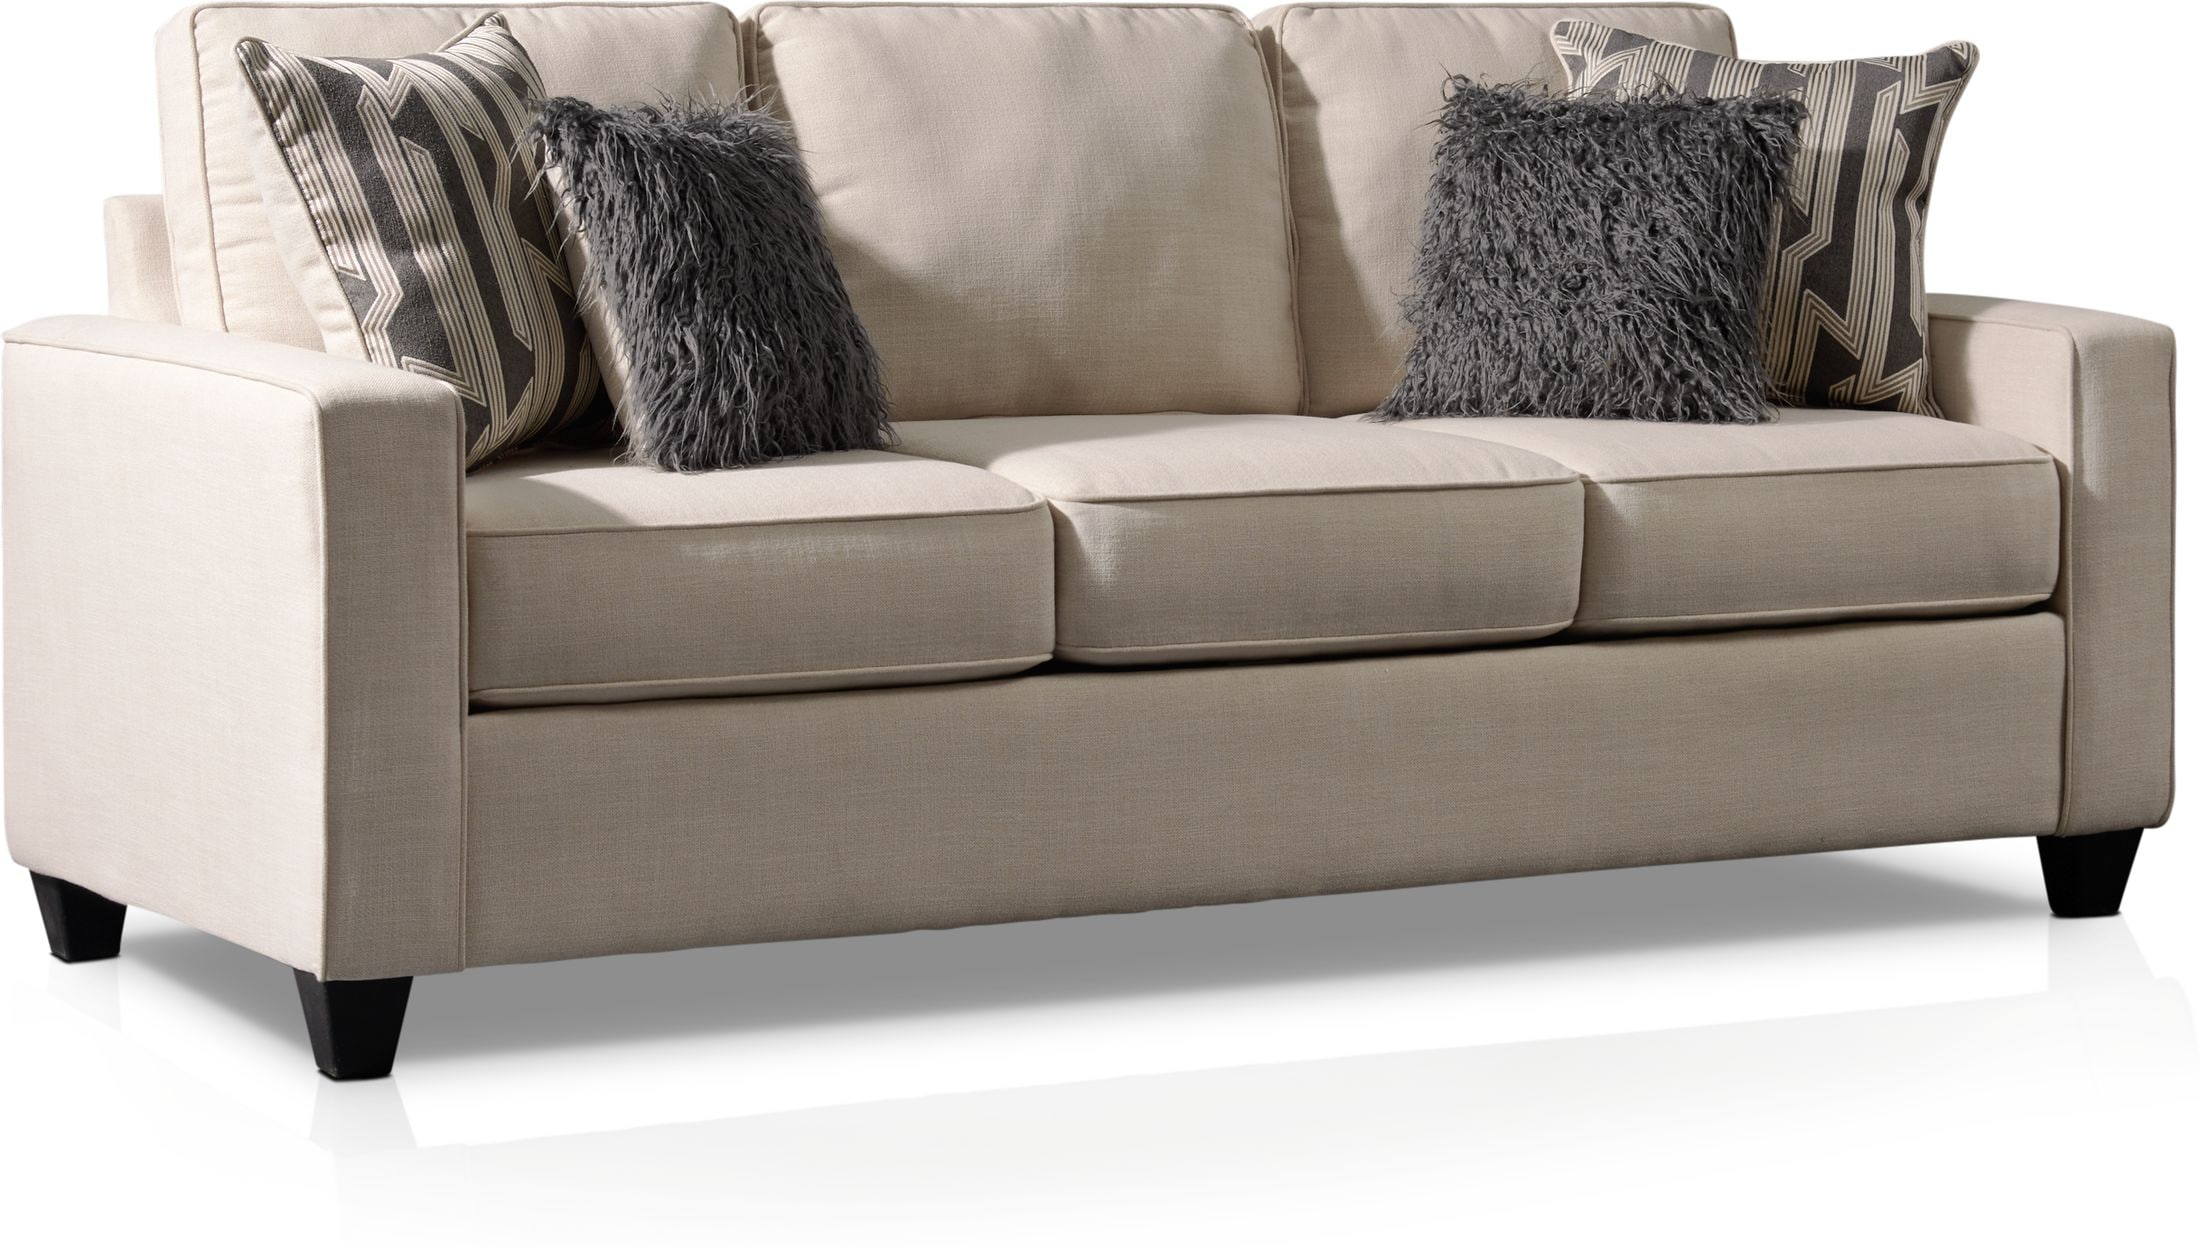 Living Room Furniture - Burton Queen Sleeper Sofa